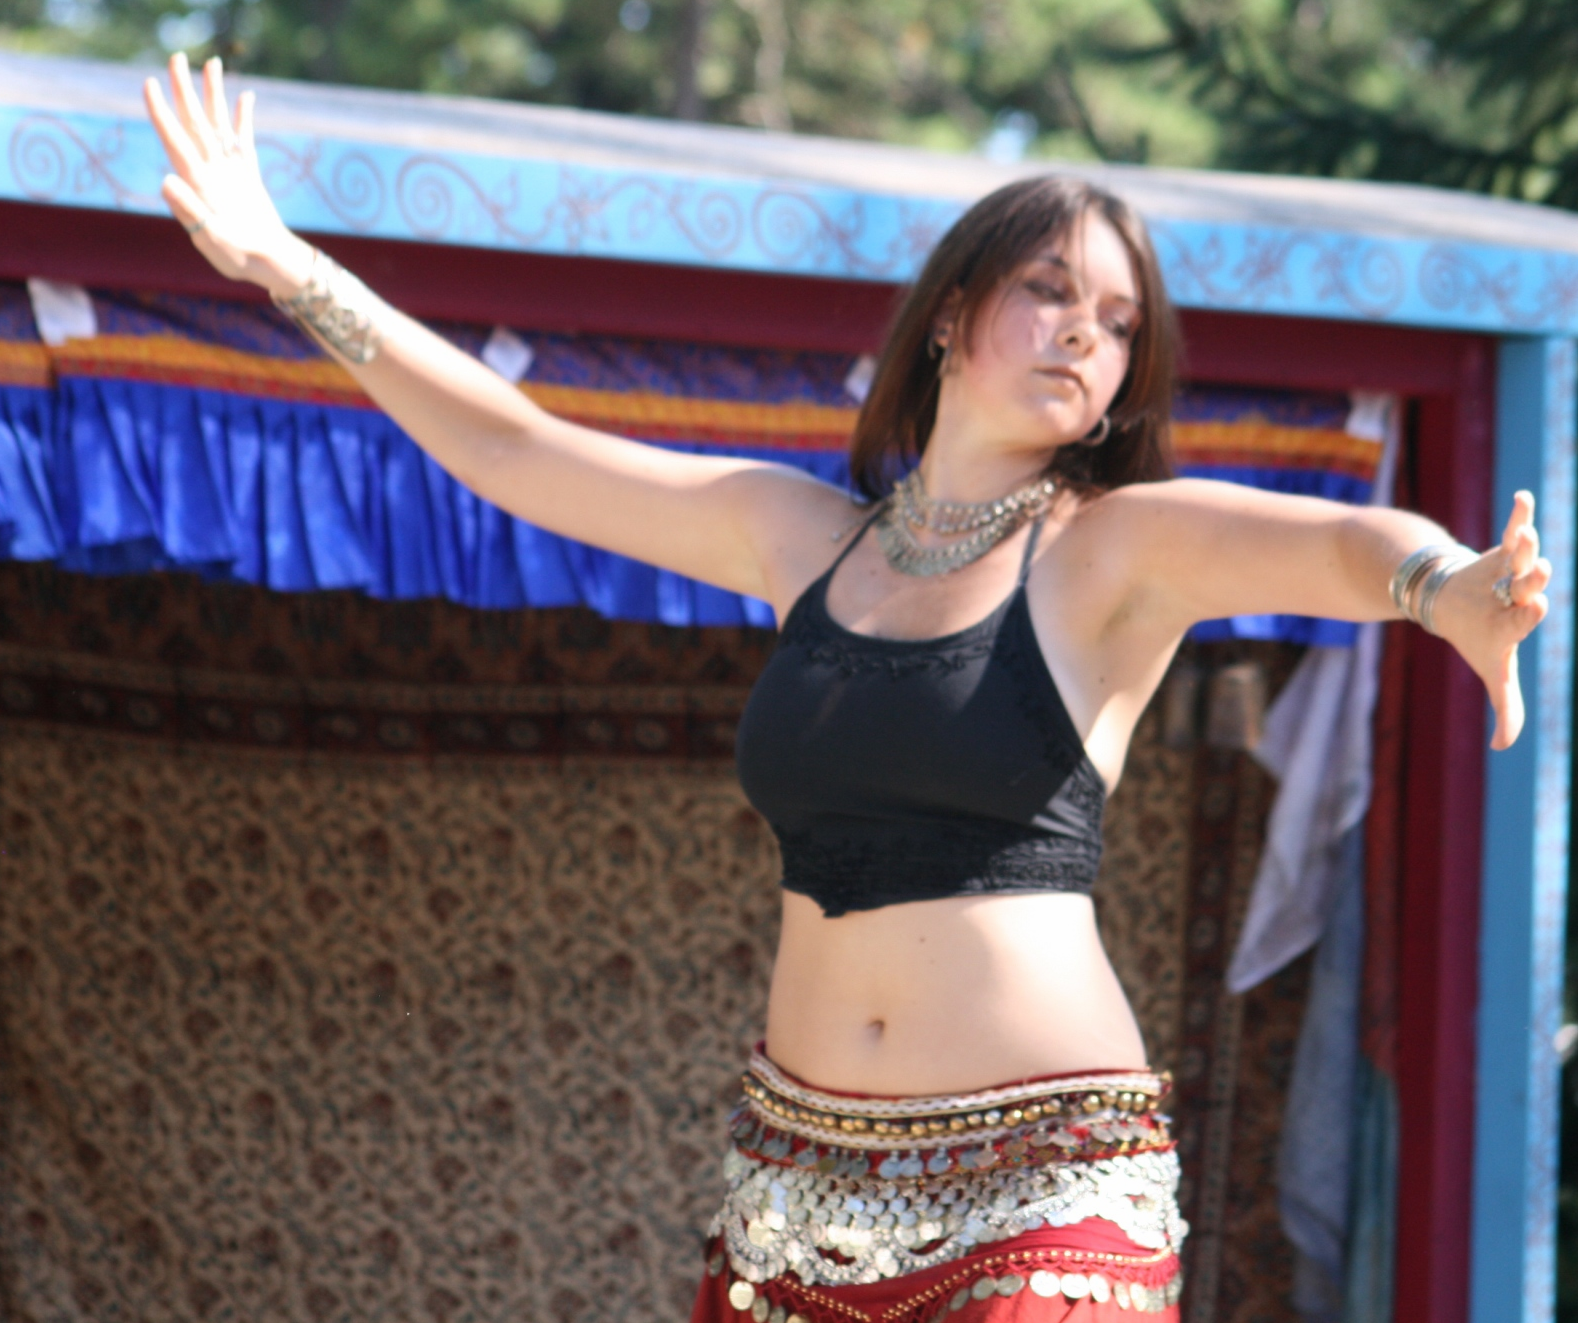 Belly Dancers Nyc File:belly Dancer in New York